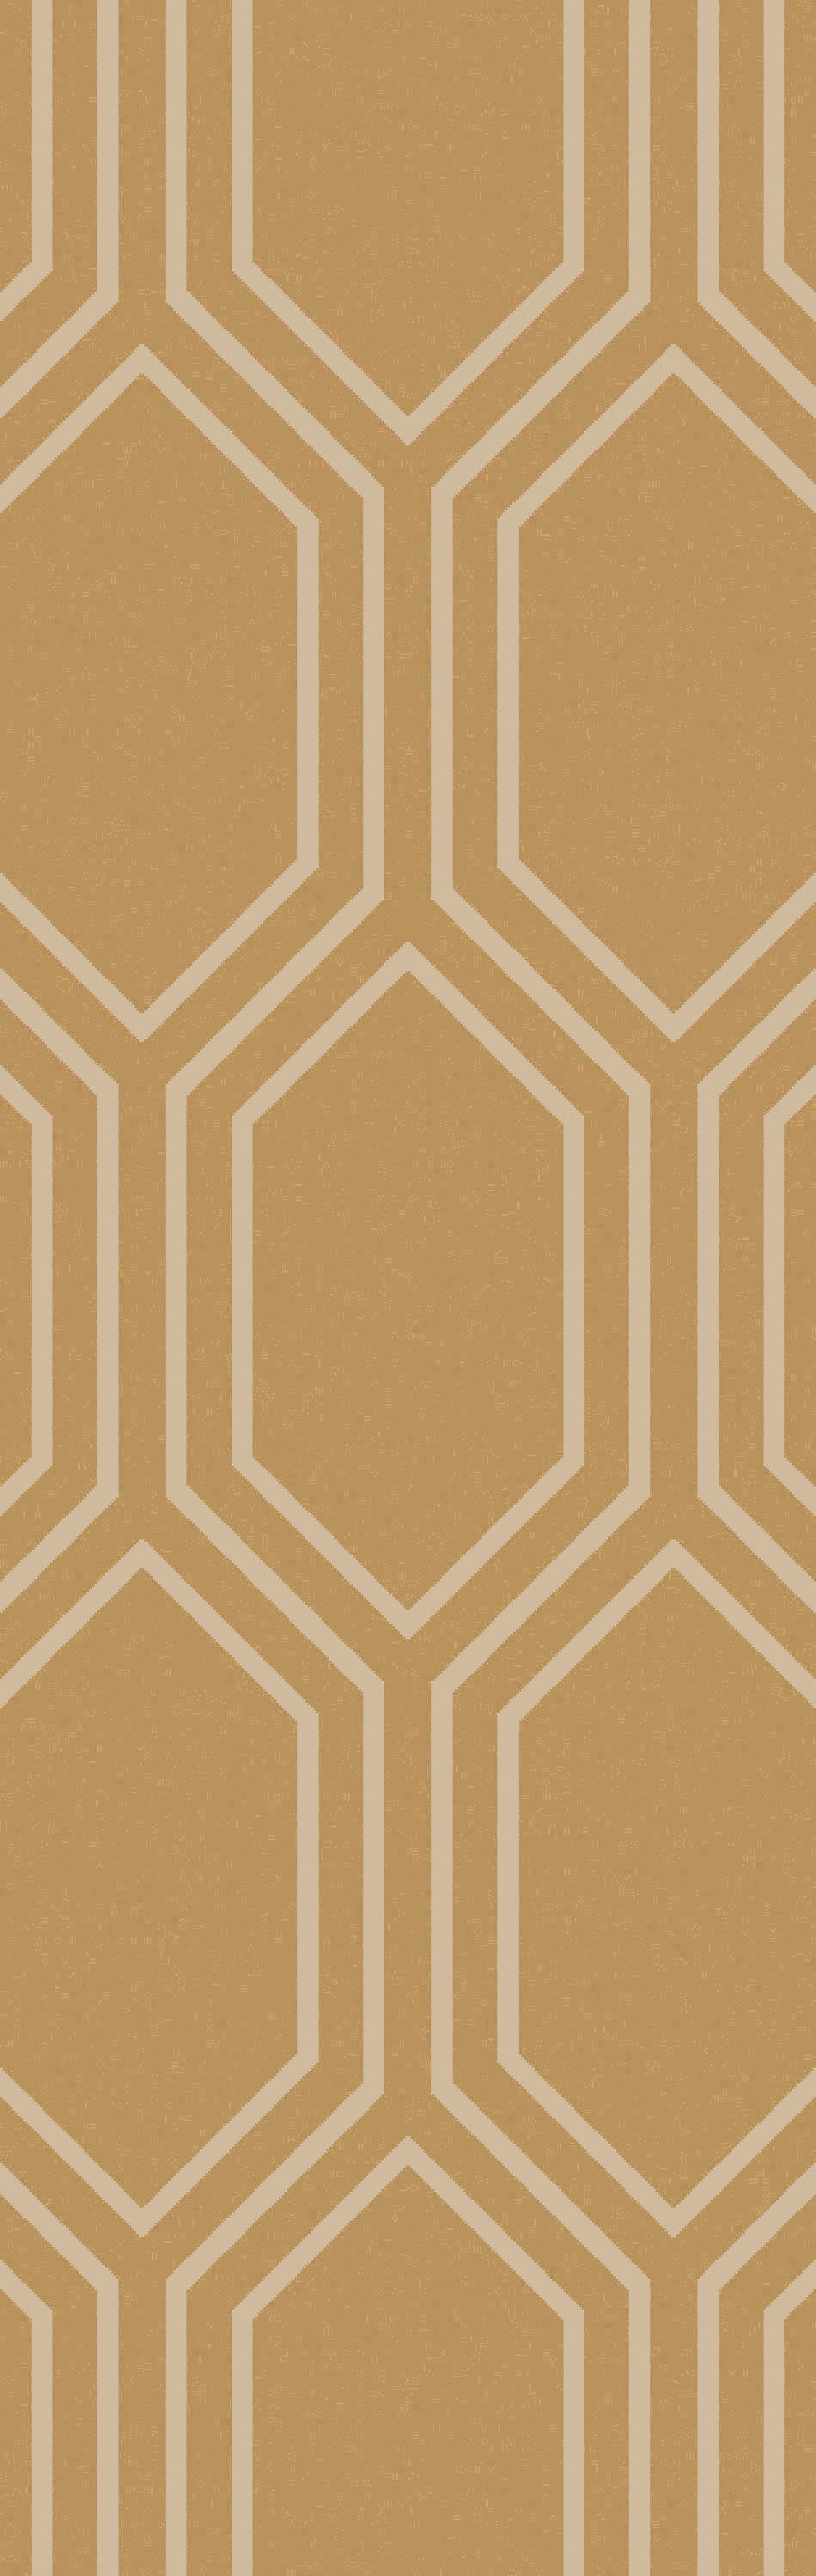 Bothwell Hand-Tufted Tan Area Rug Rug Size: Runner 2'6